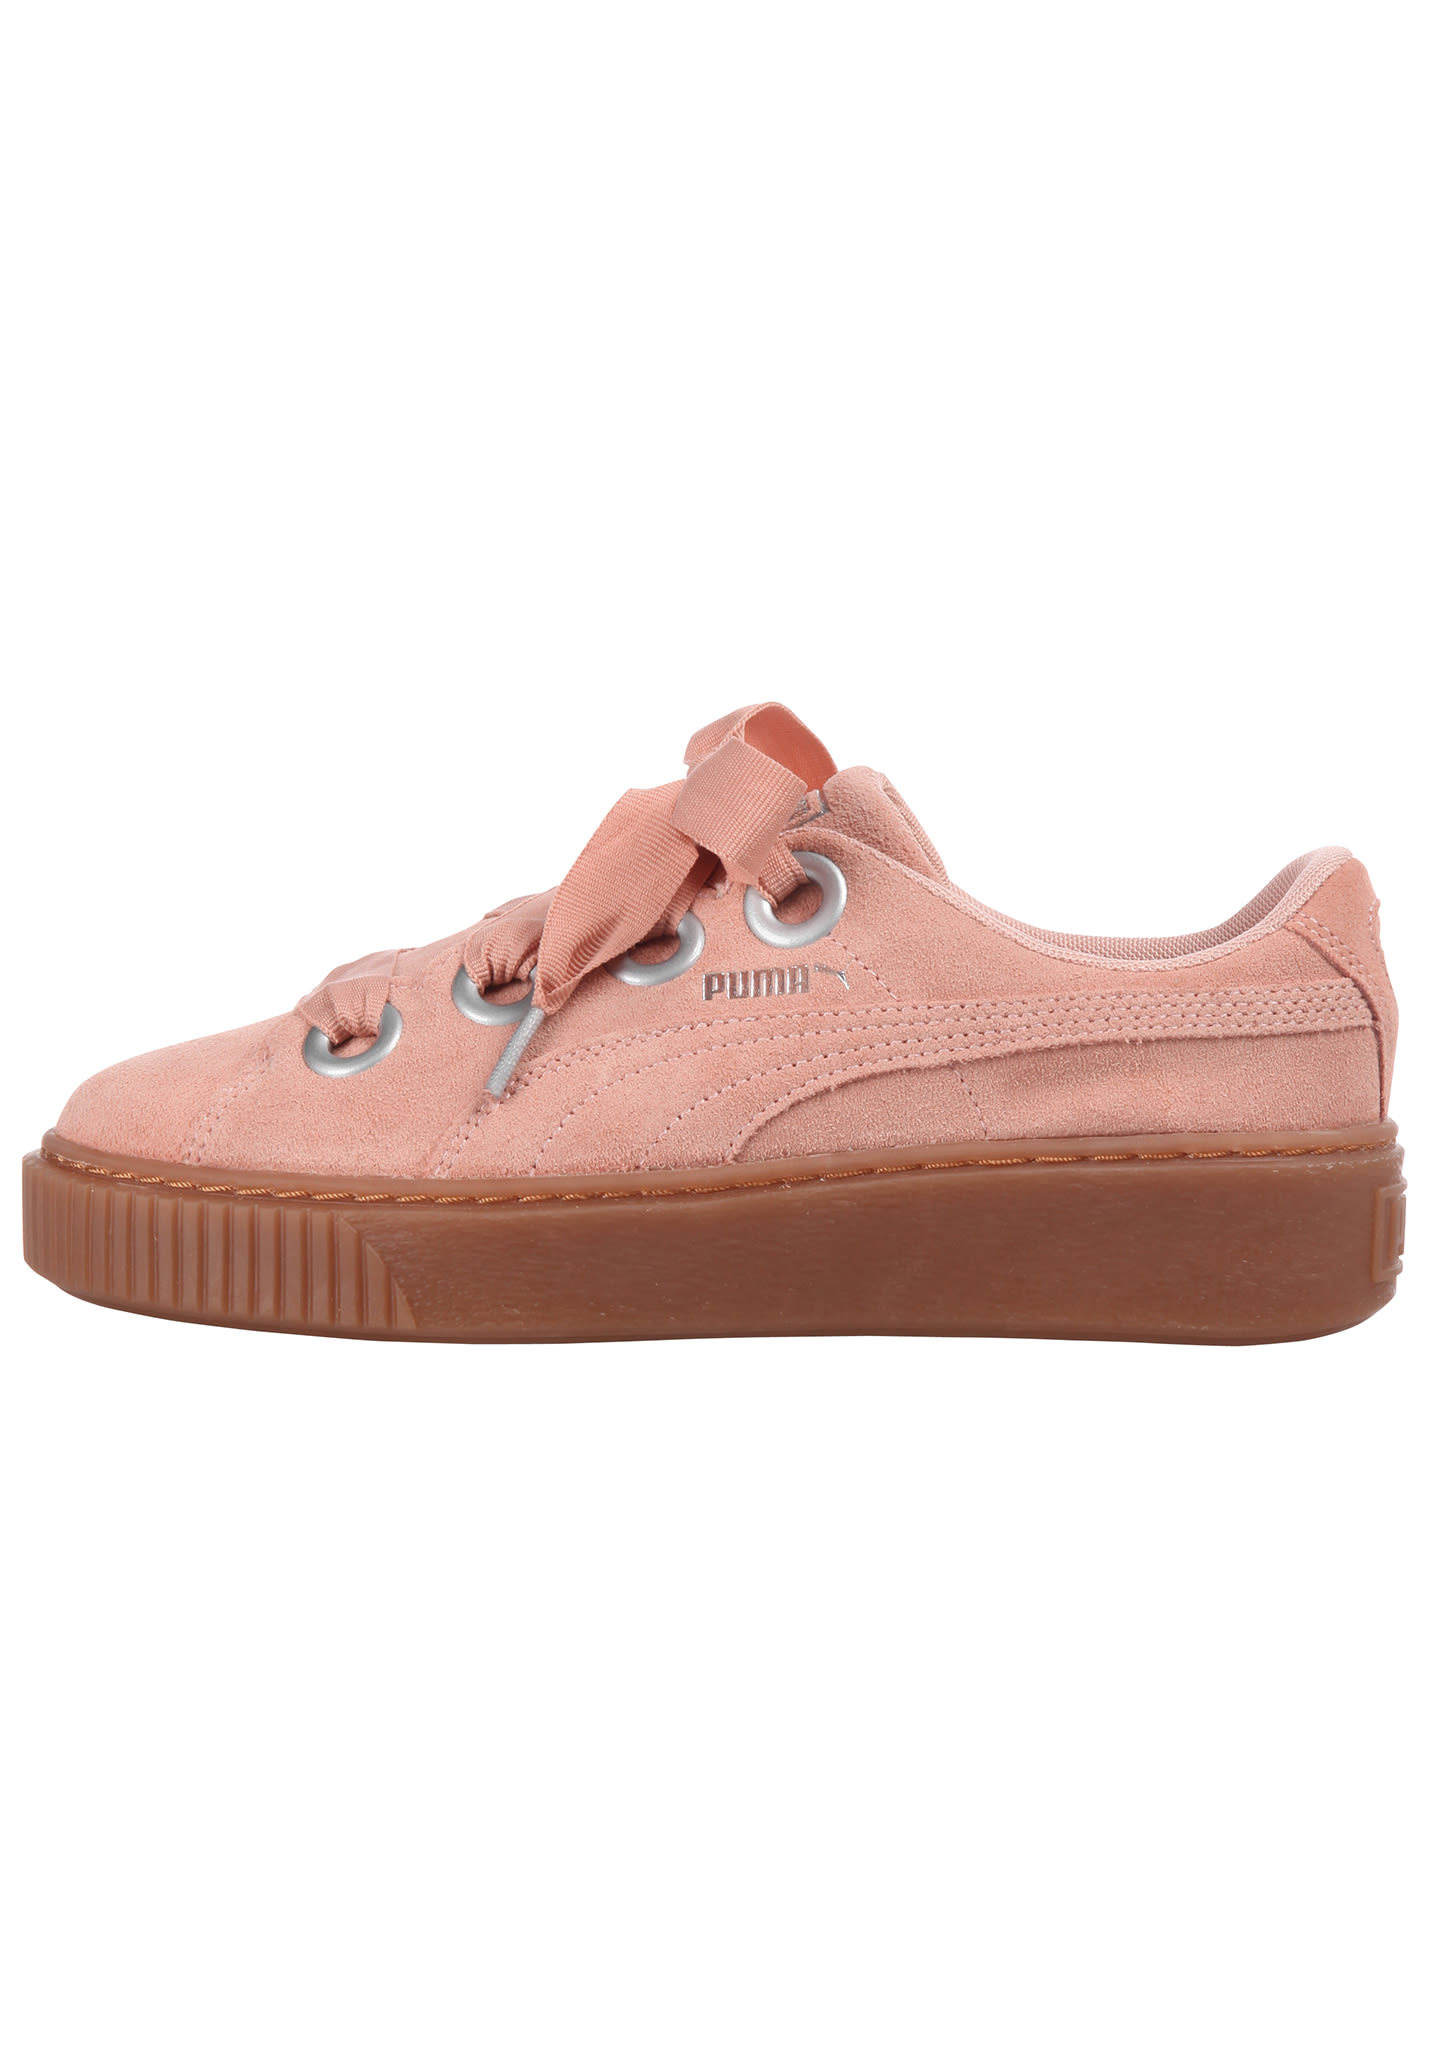 Women Pink Suede Puma Kiss Sneakers For Platform FKJc3Tl1